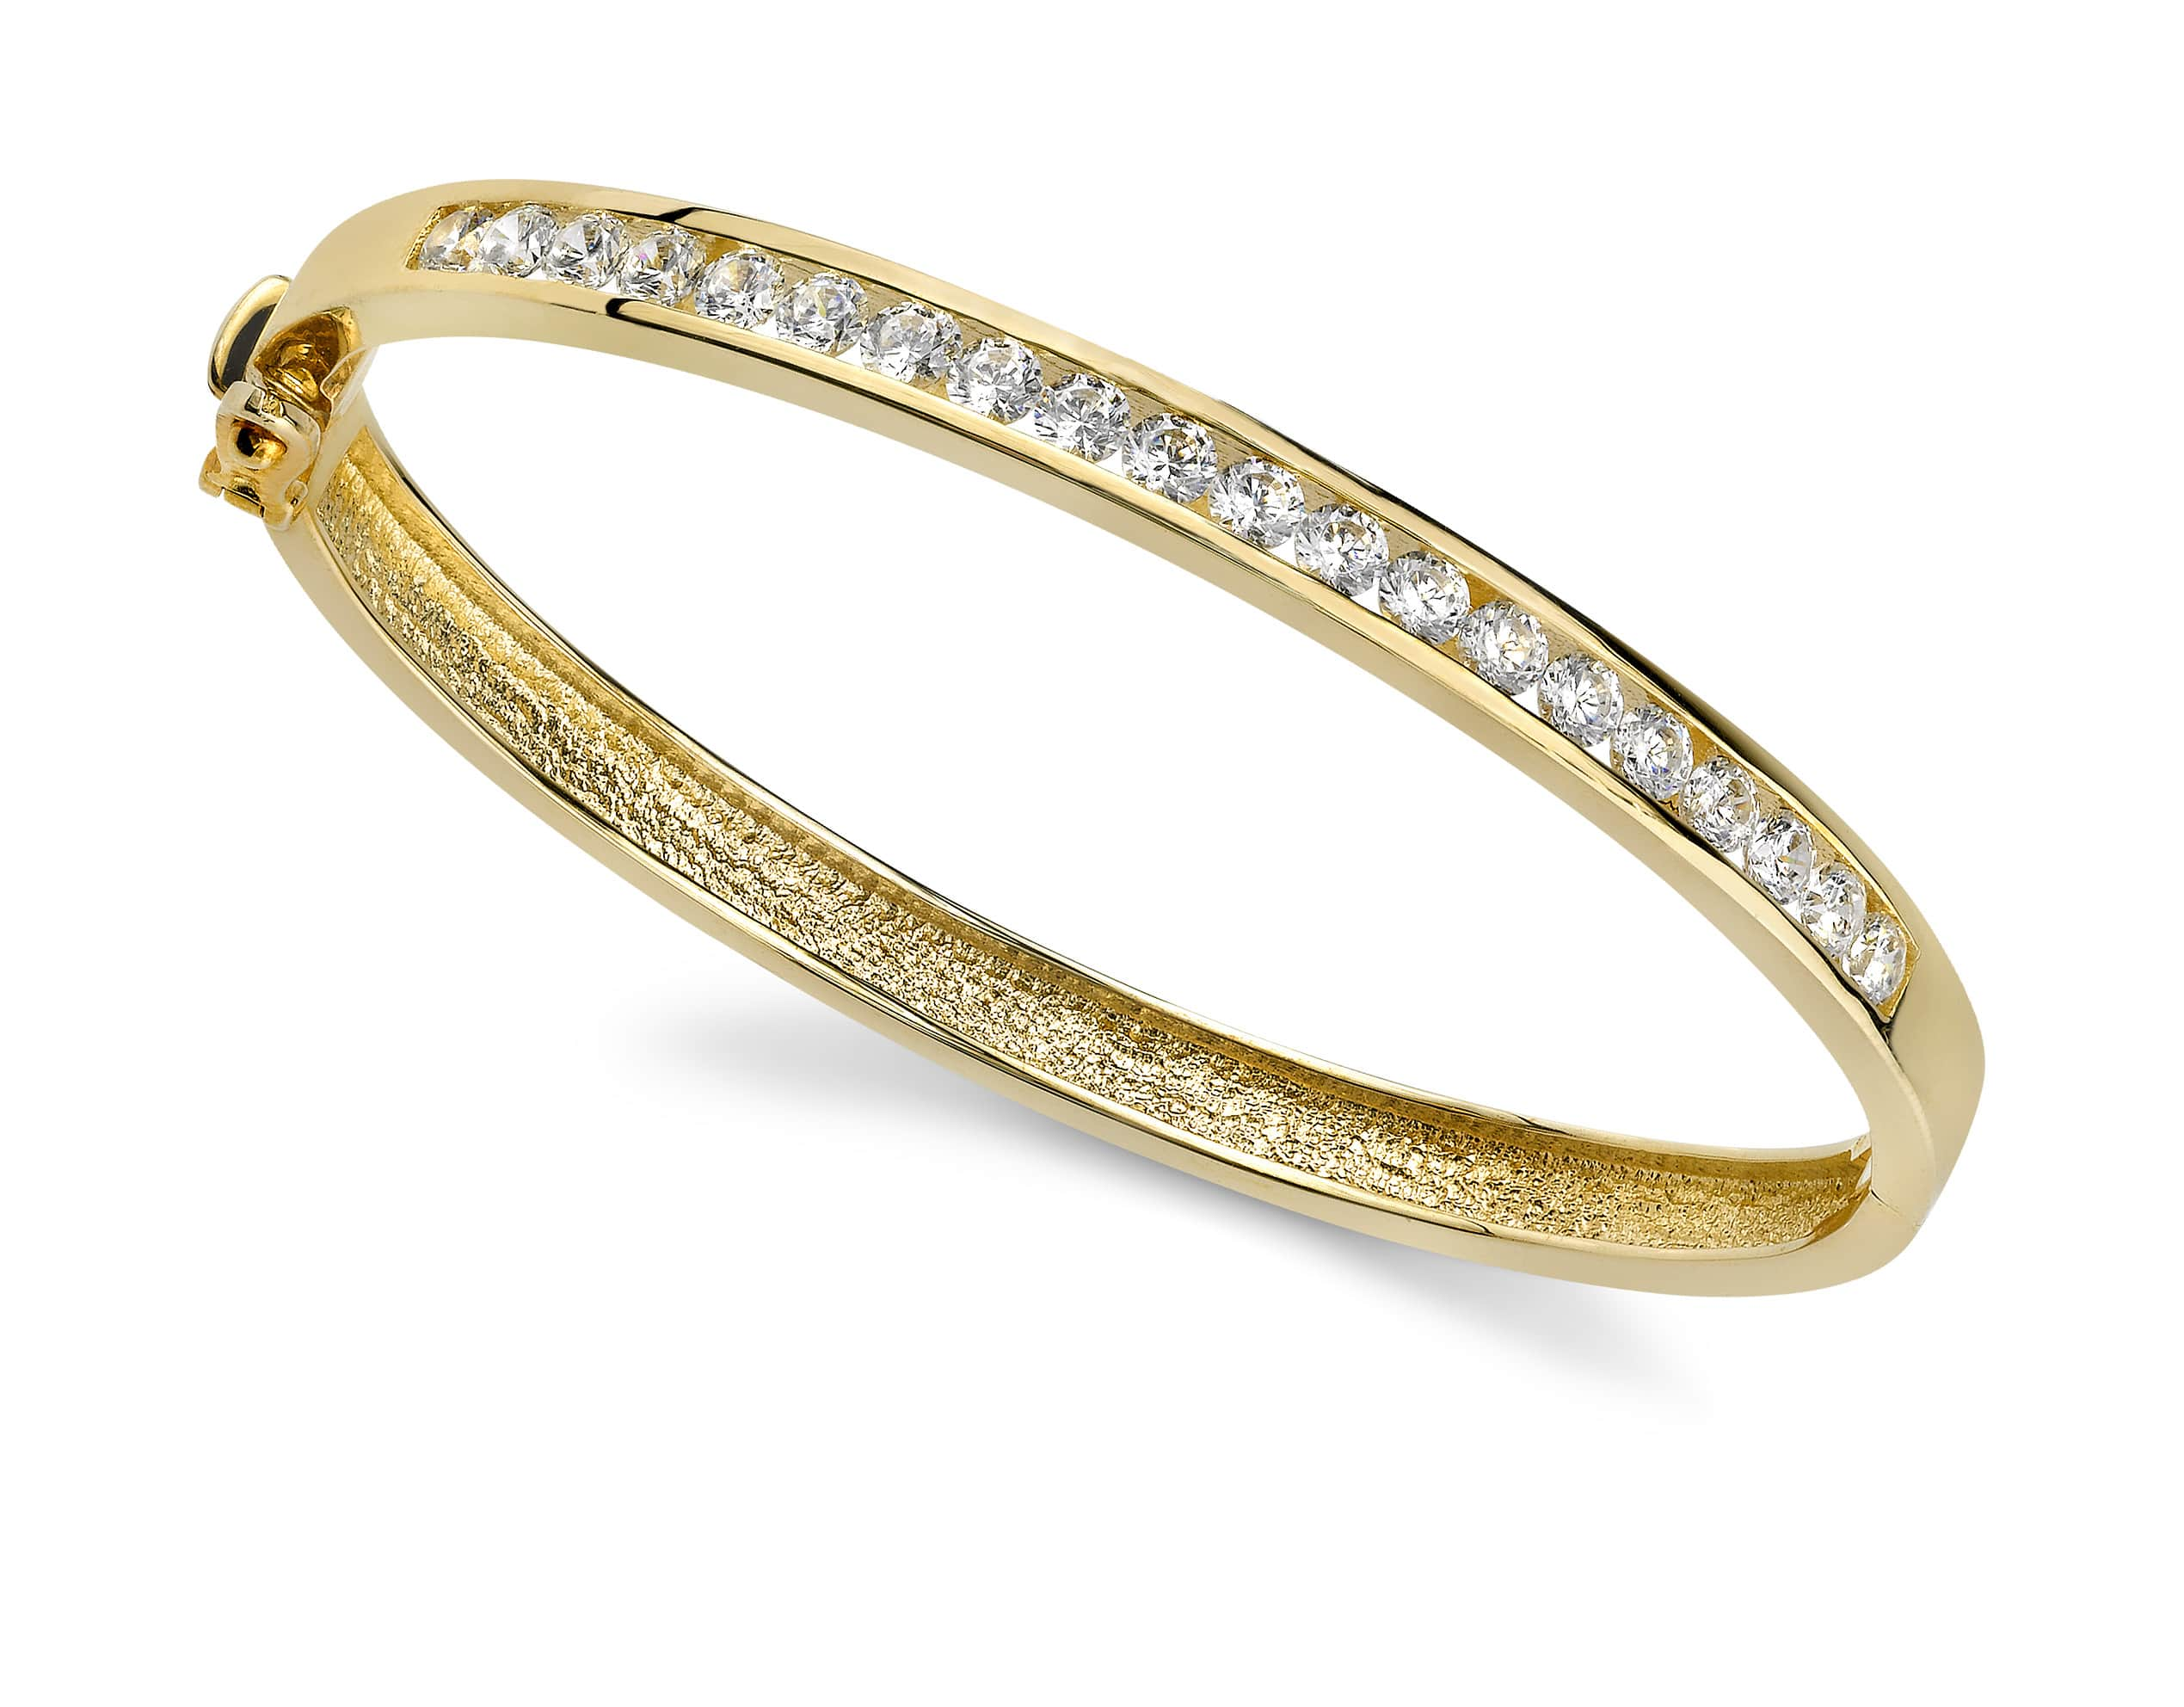 kada bangle itm goldplated size bangles type jewelry bracelets traditional women bracelet bridal